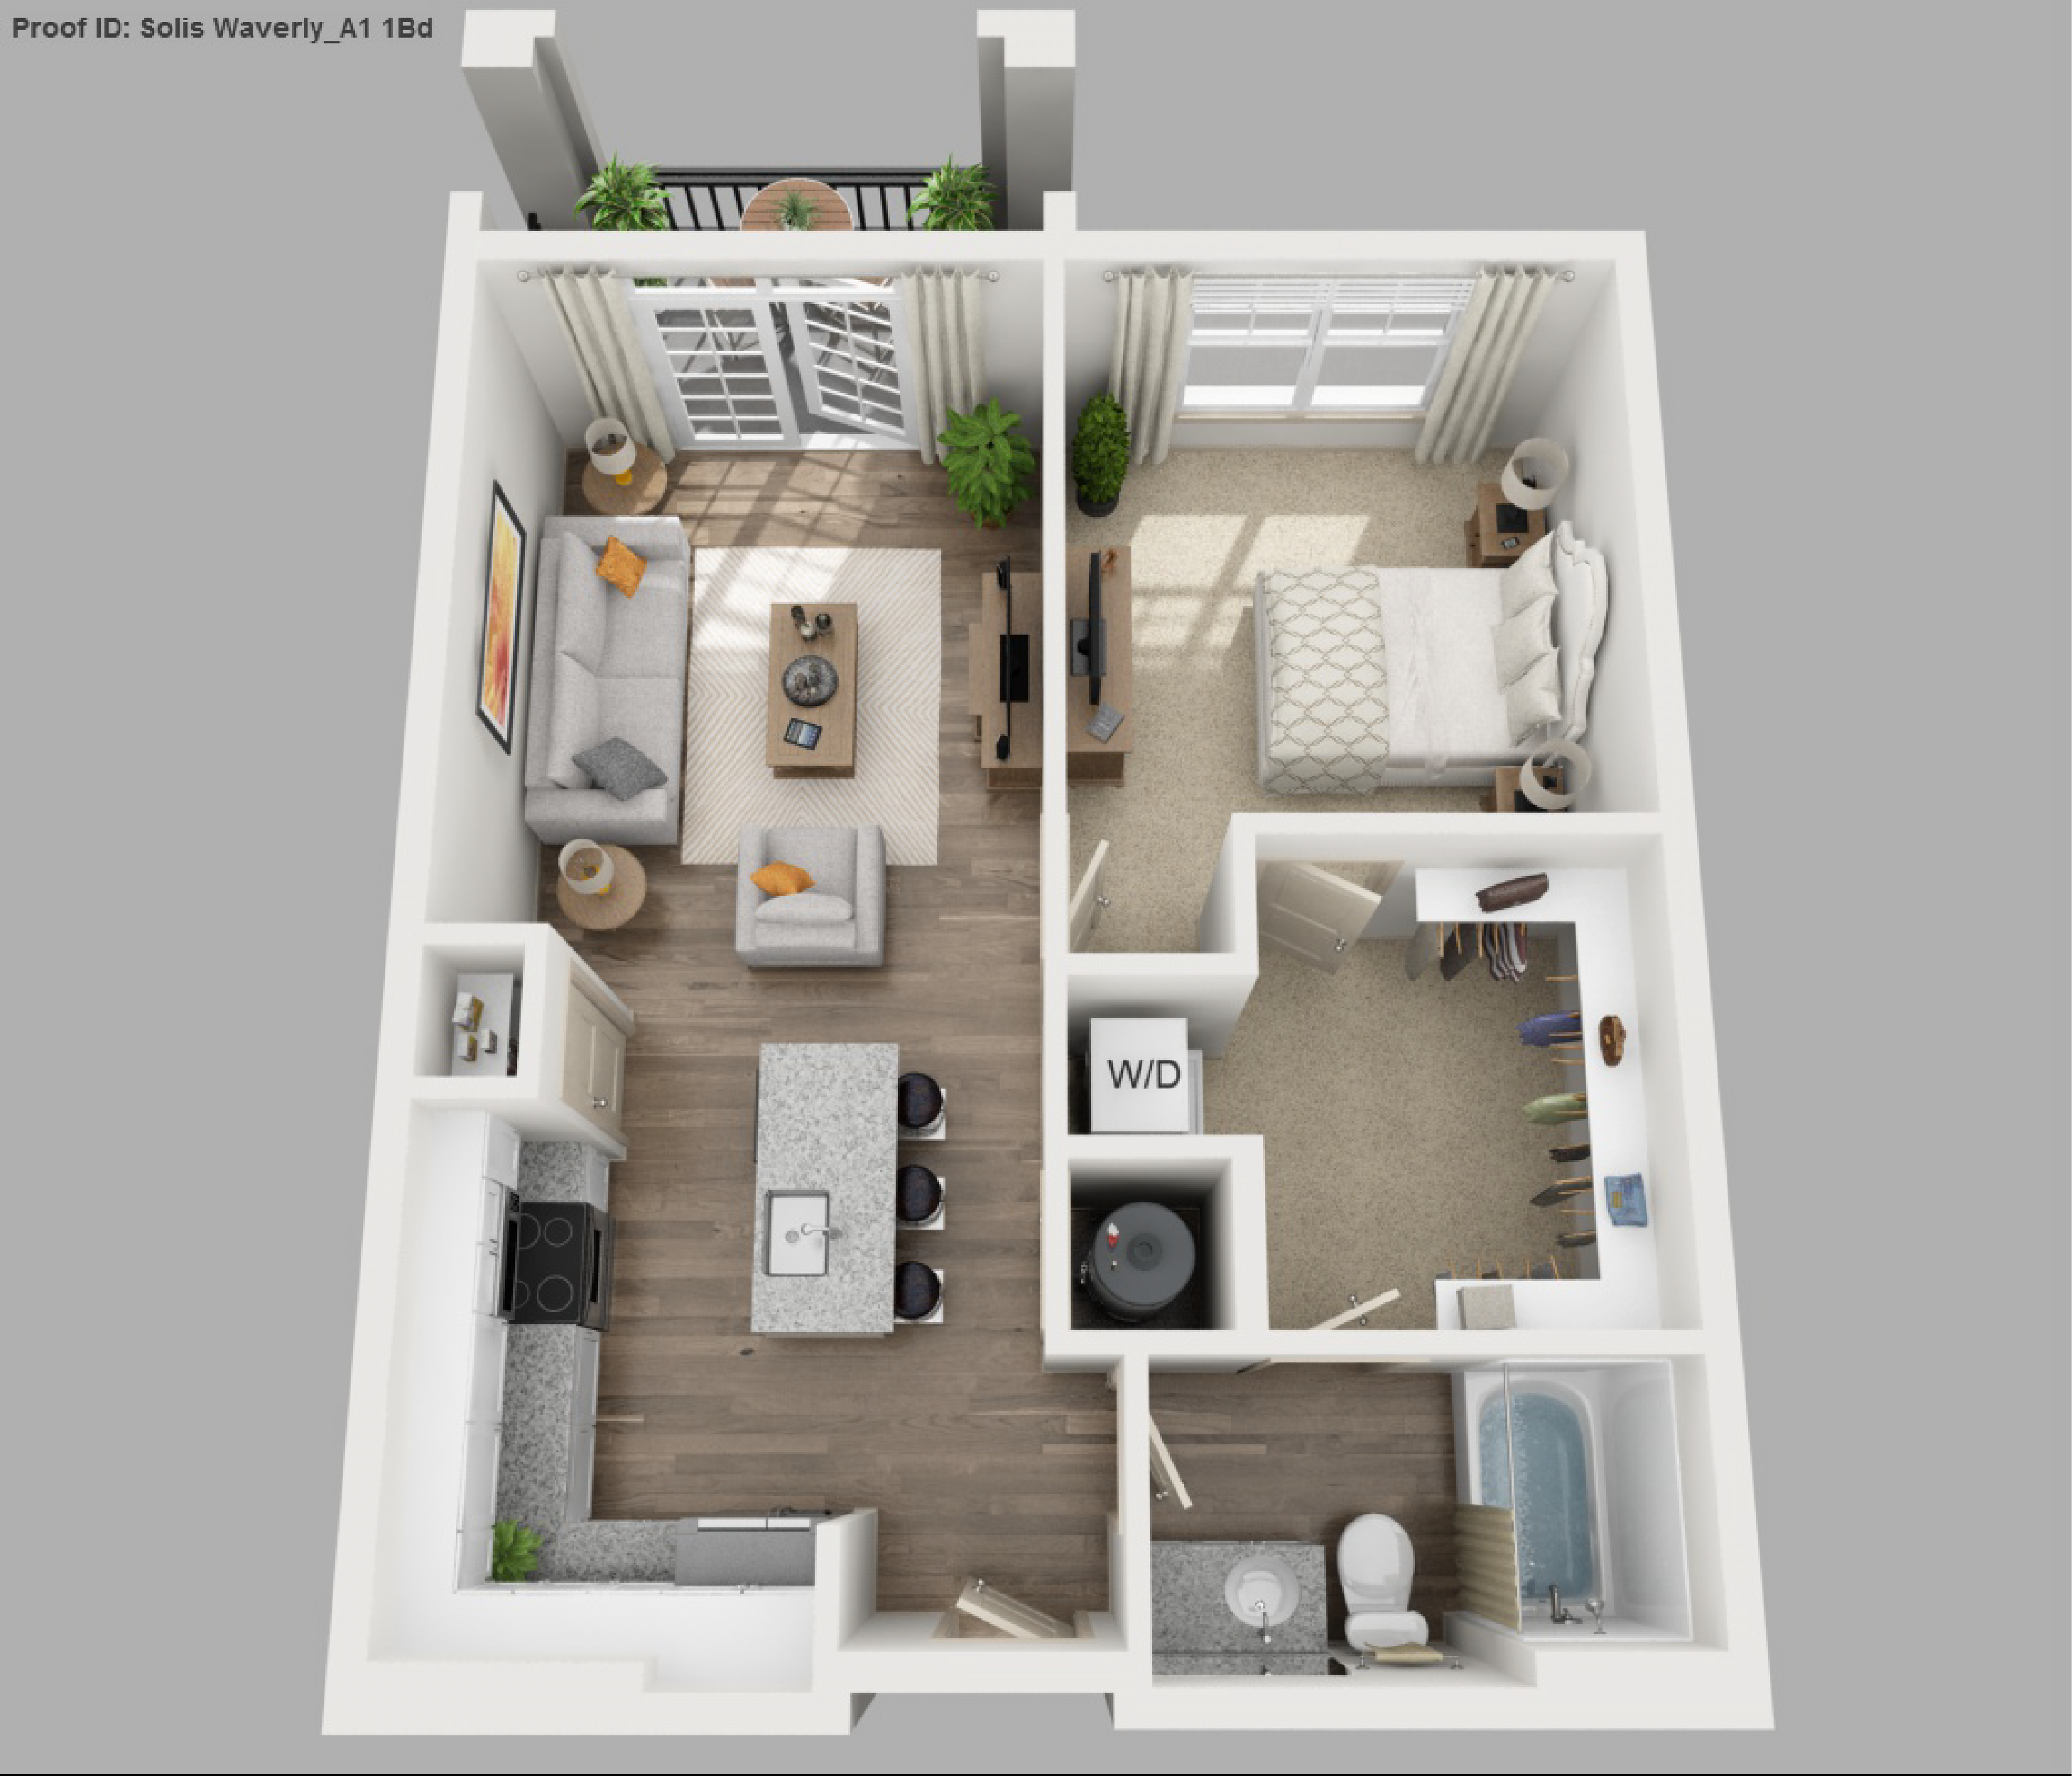 One bedroom apartments floor plans house plans for Single bedroom apartment design